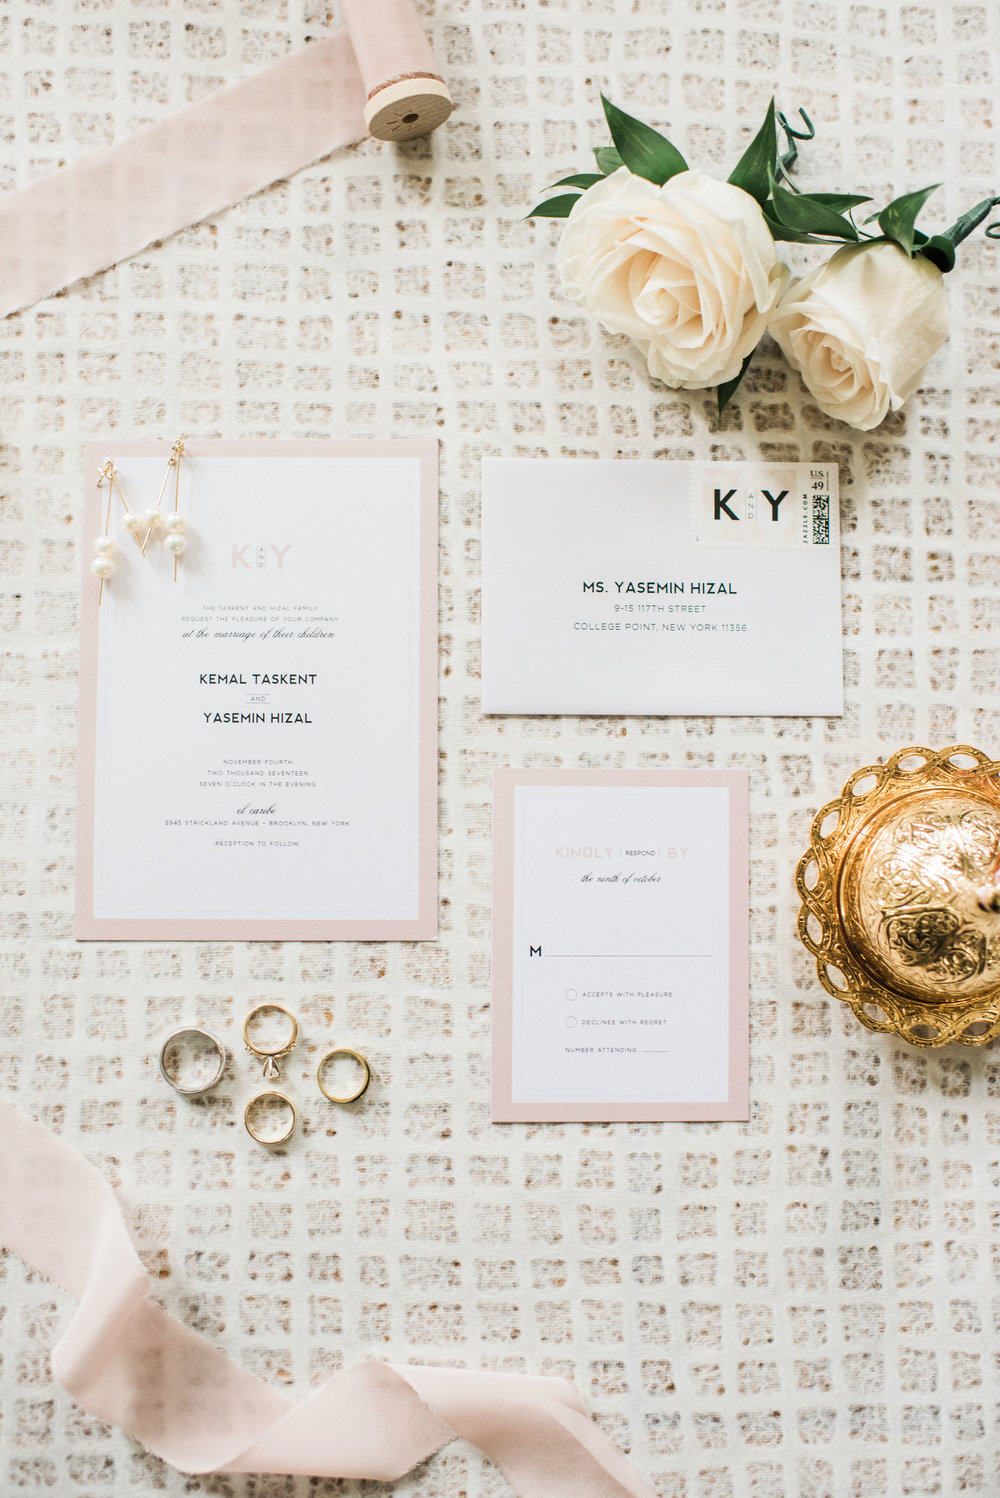 Wedding Invitation, Rose Gold Wedding Invitation, Wedding Invitation Styling, Wedding day details, Bride and groom rings, boutonniere,